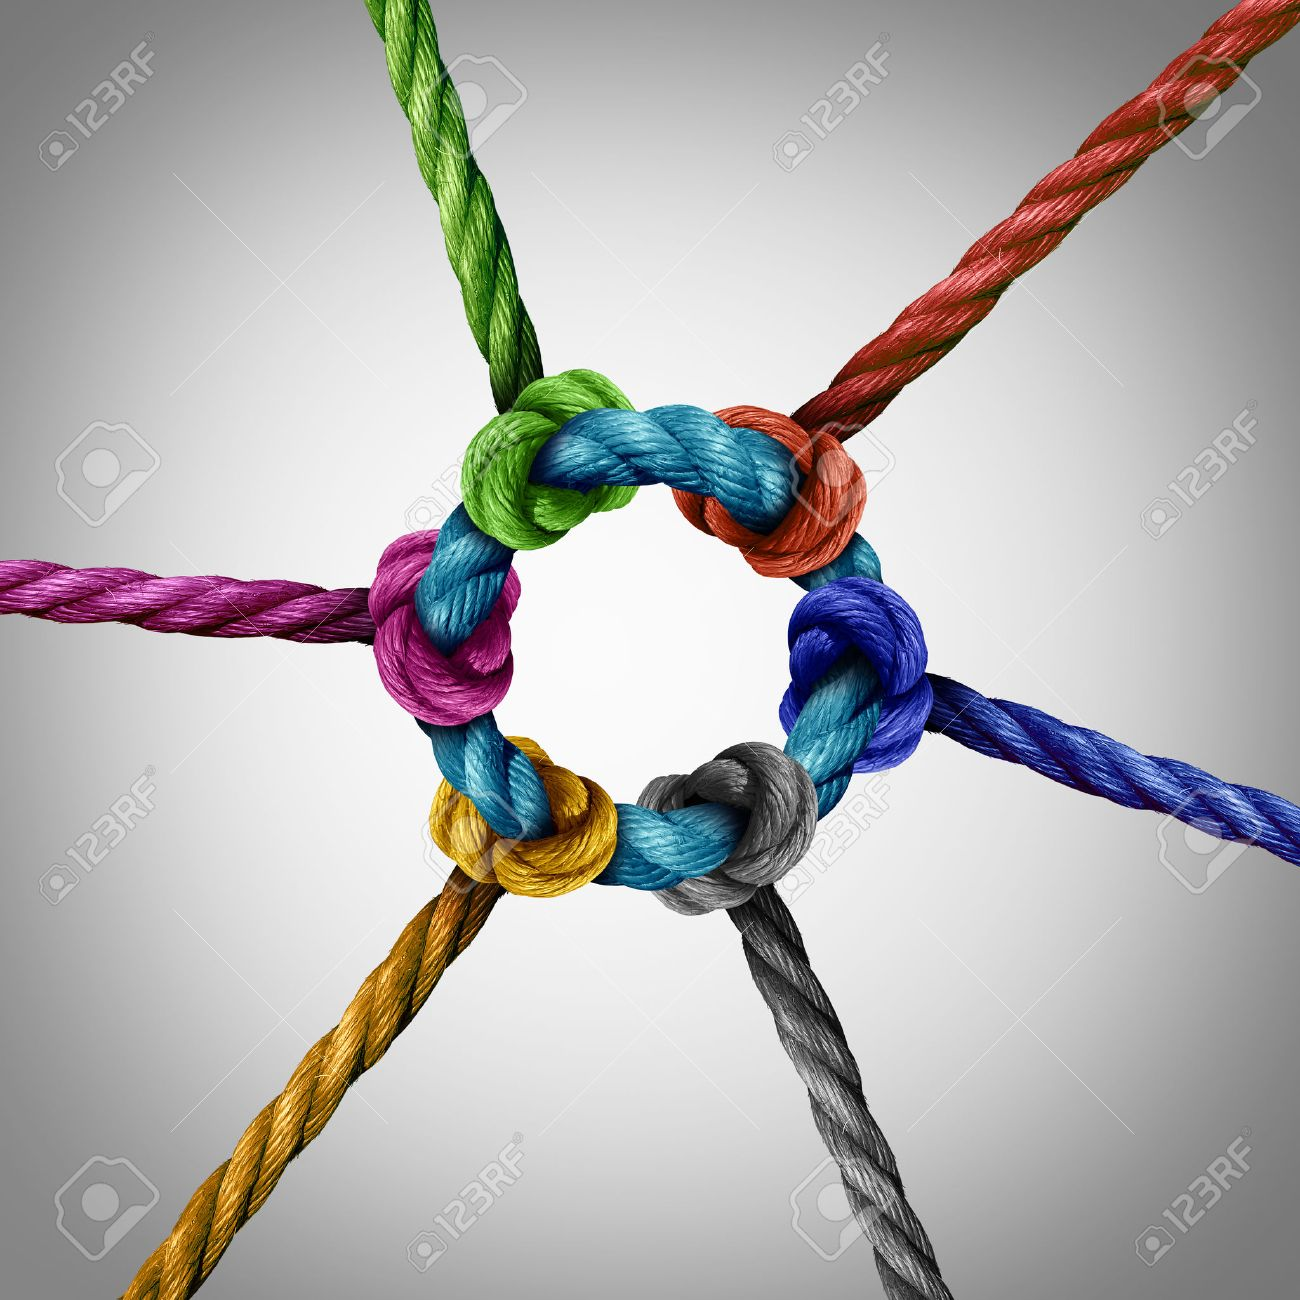 Central network connection business concept as a group of diverse ropes connected to a circle central rope as a network metaphor for connectivity and linking to a centralized support structure. Stock Photo - 56997806